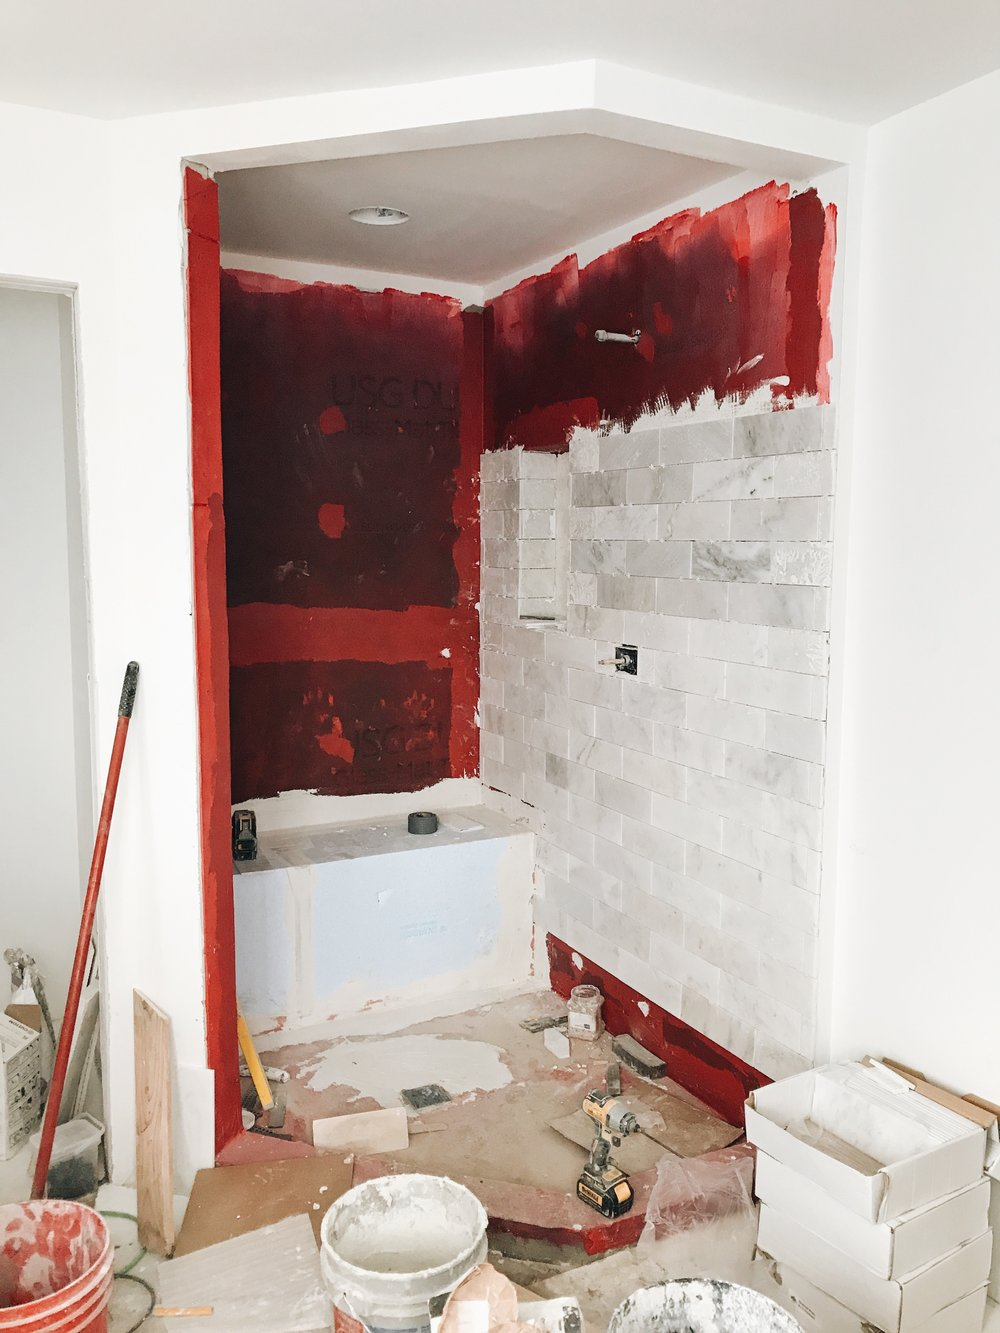 Designing A Master Bath. Bathroom remodeling ideas. Modern bathroom design. New bathroom construction. Master bathroom freestanding tub and marble shower ideas. #wetstyle #sponsored #newconstruction #modern #master #bathroom